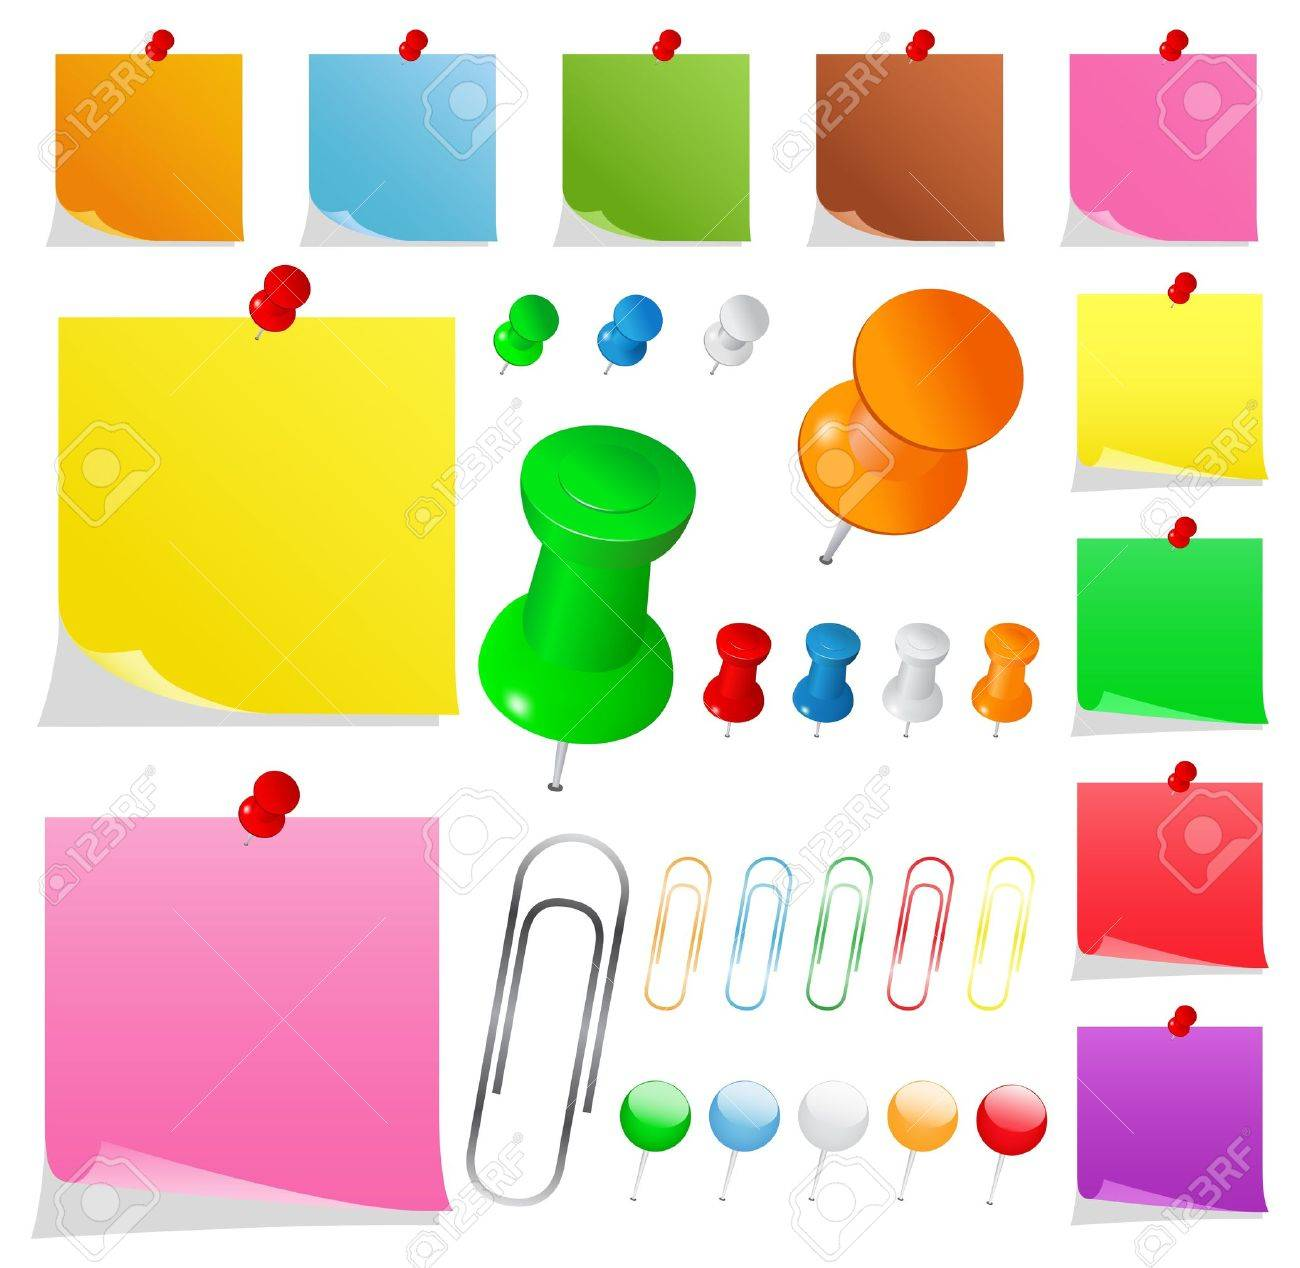 Colorful Paper Notes with Pushpins and Clips Stock Vector - 9398620